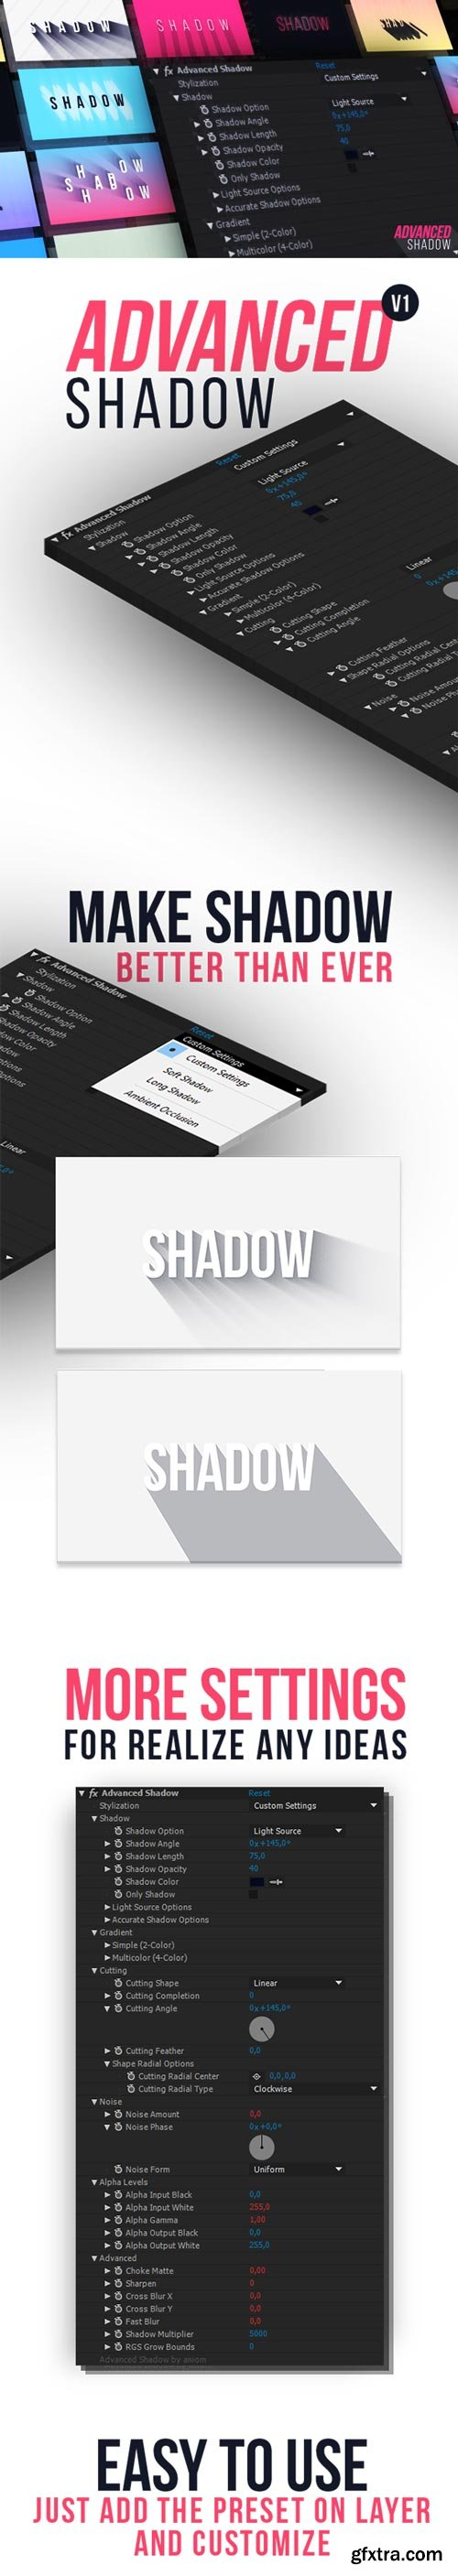 Videohive -Advanced Shadow - 21222364